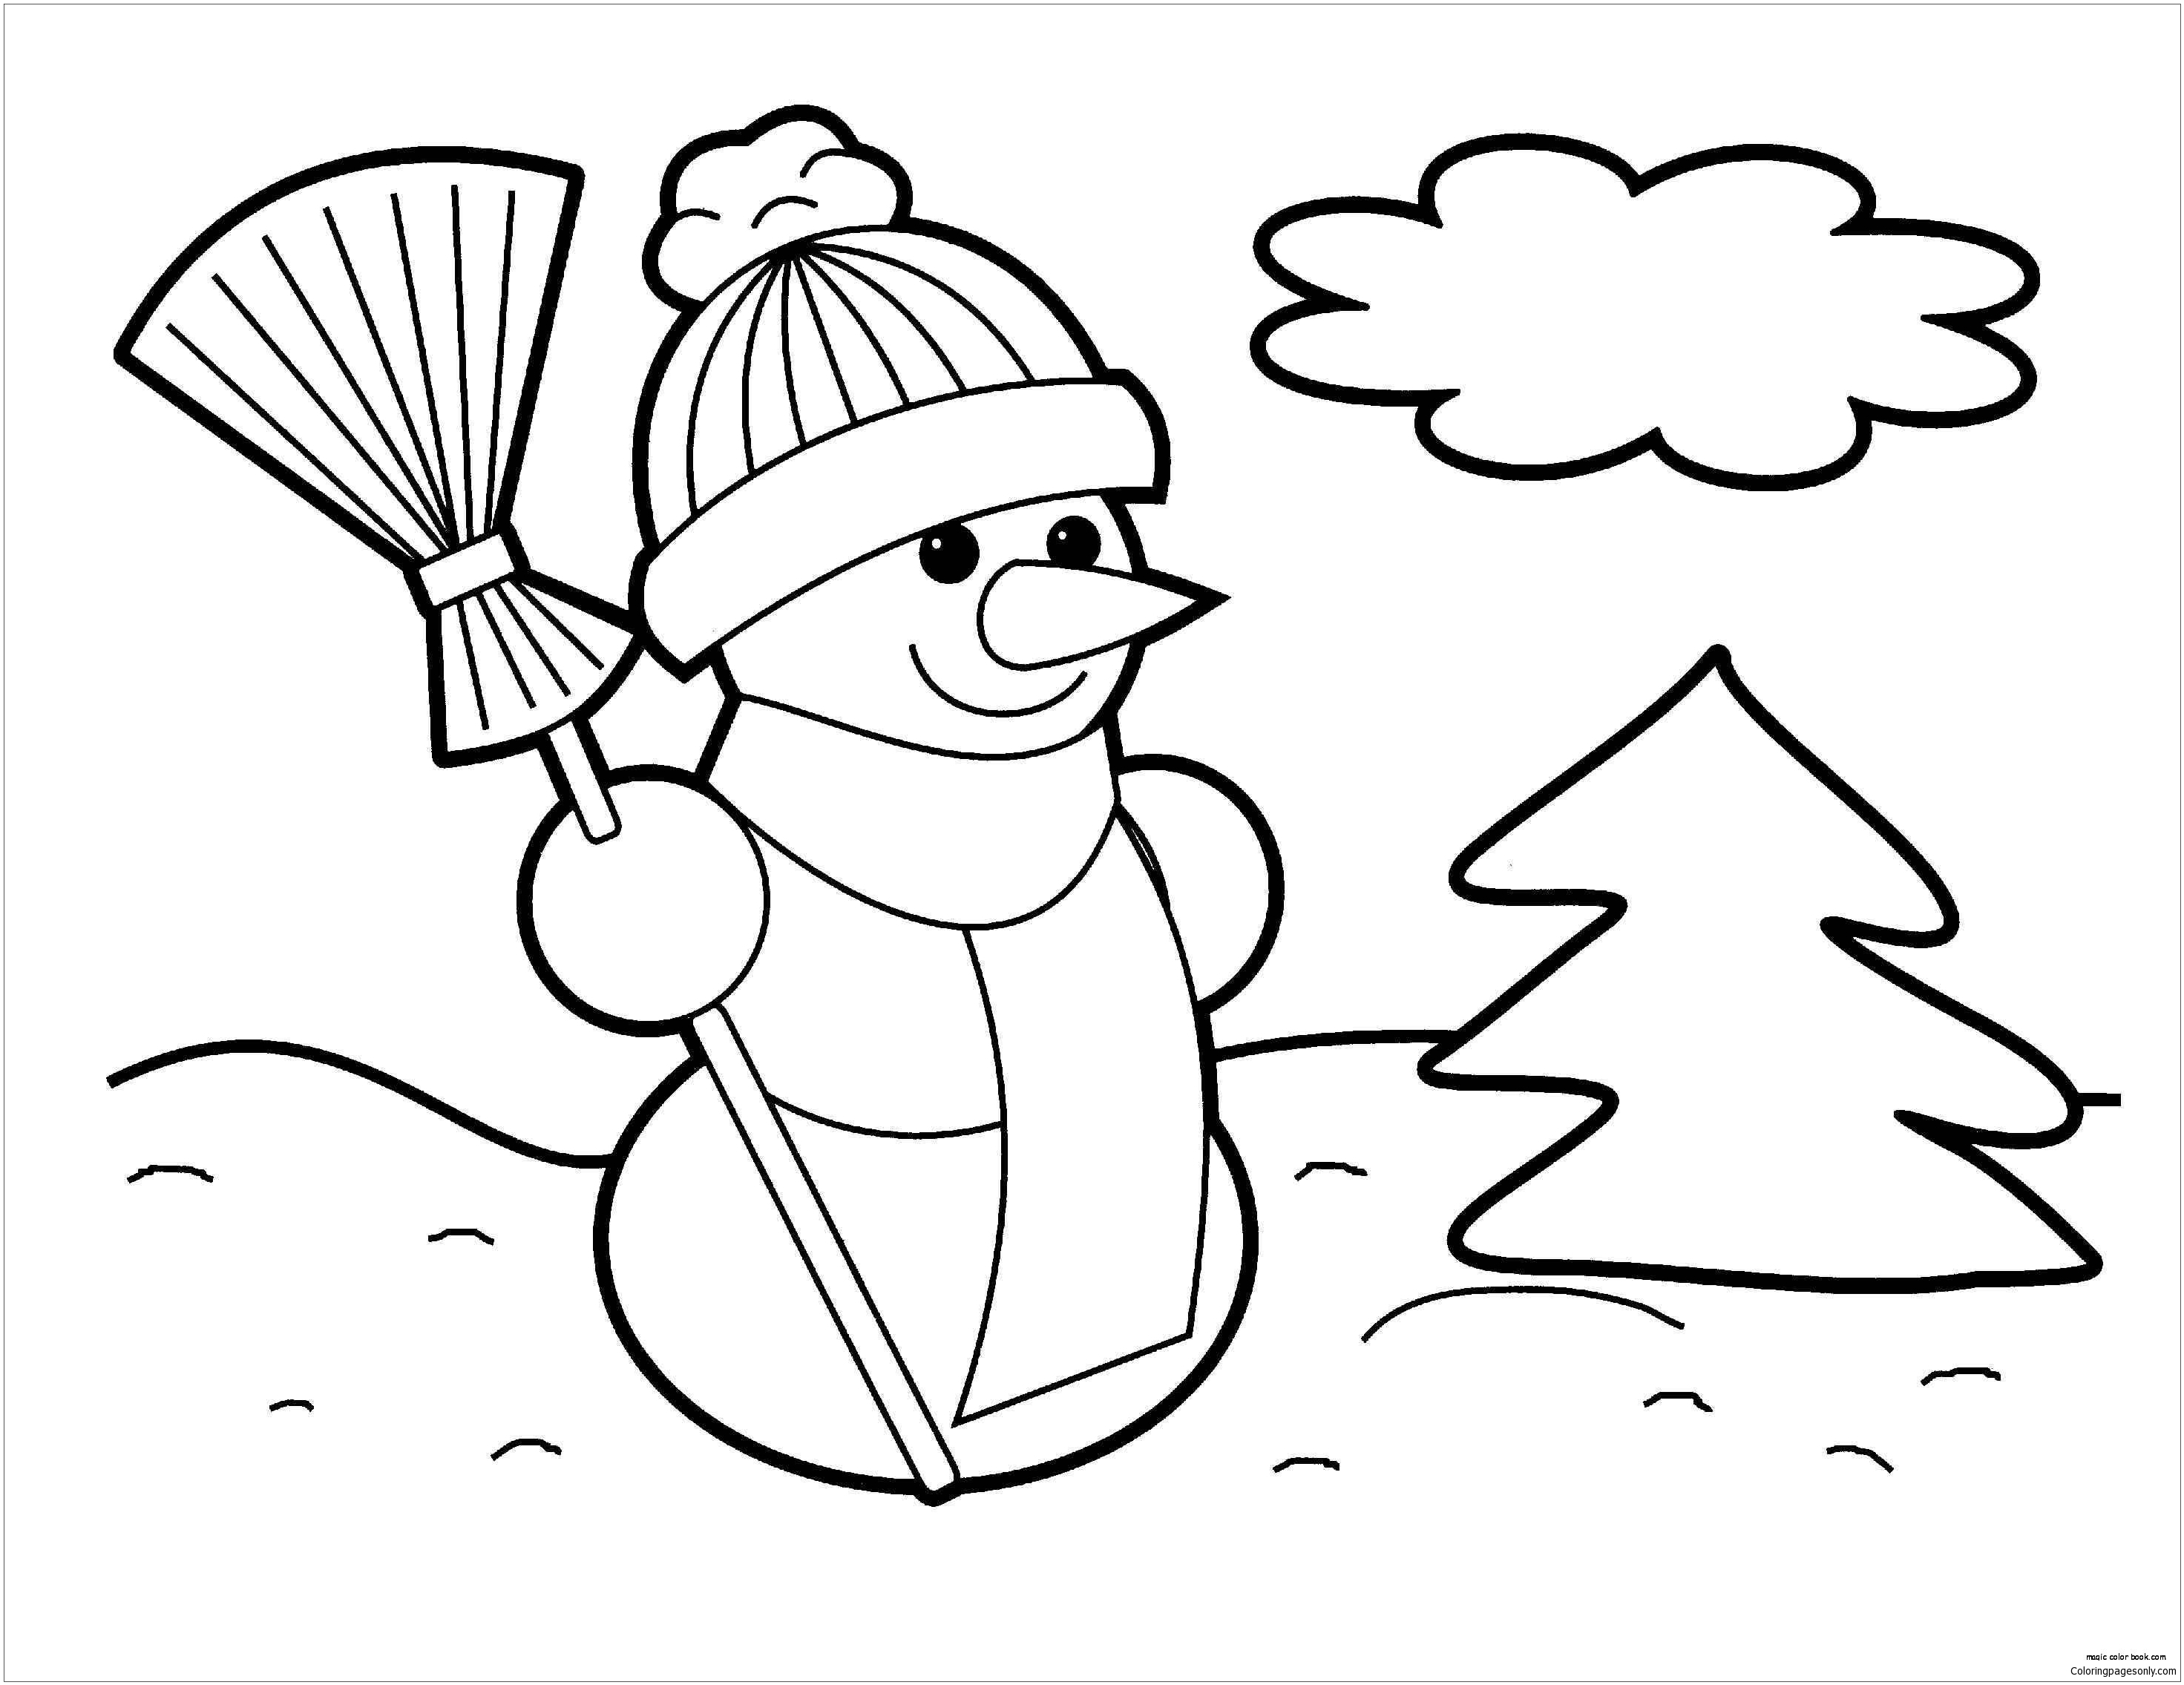 Snowman 1 Coloring Page - Free Coloring Pages Online